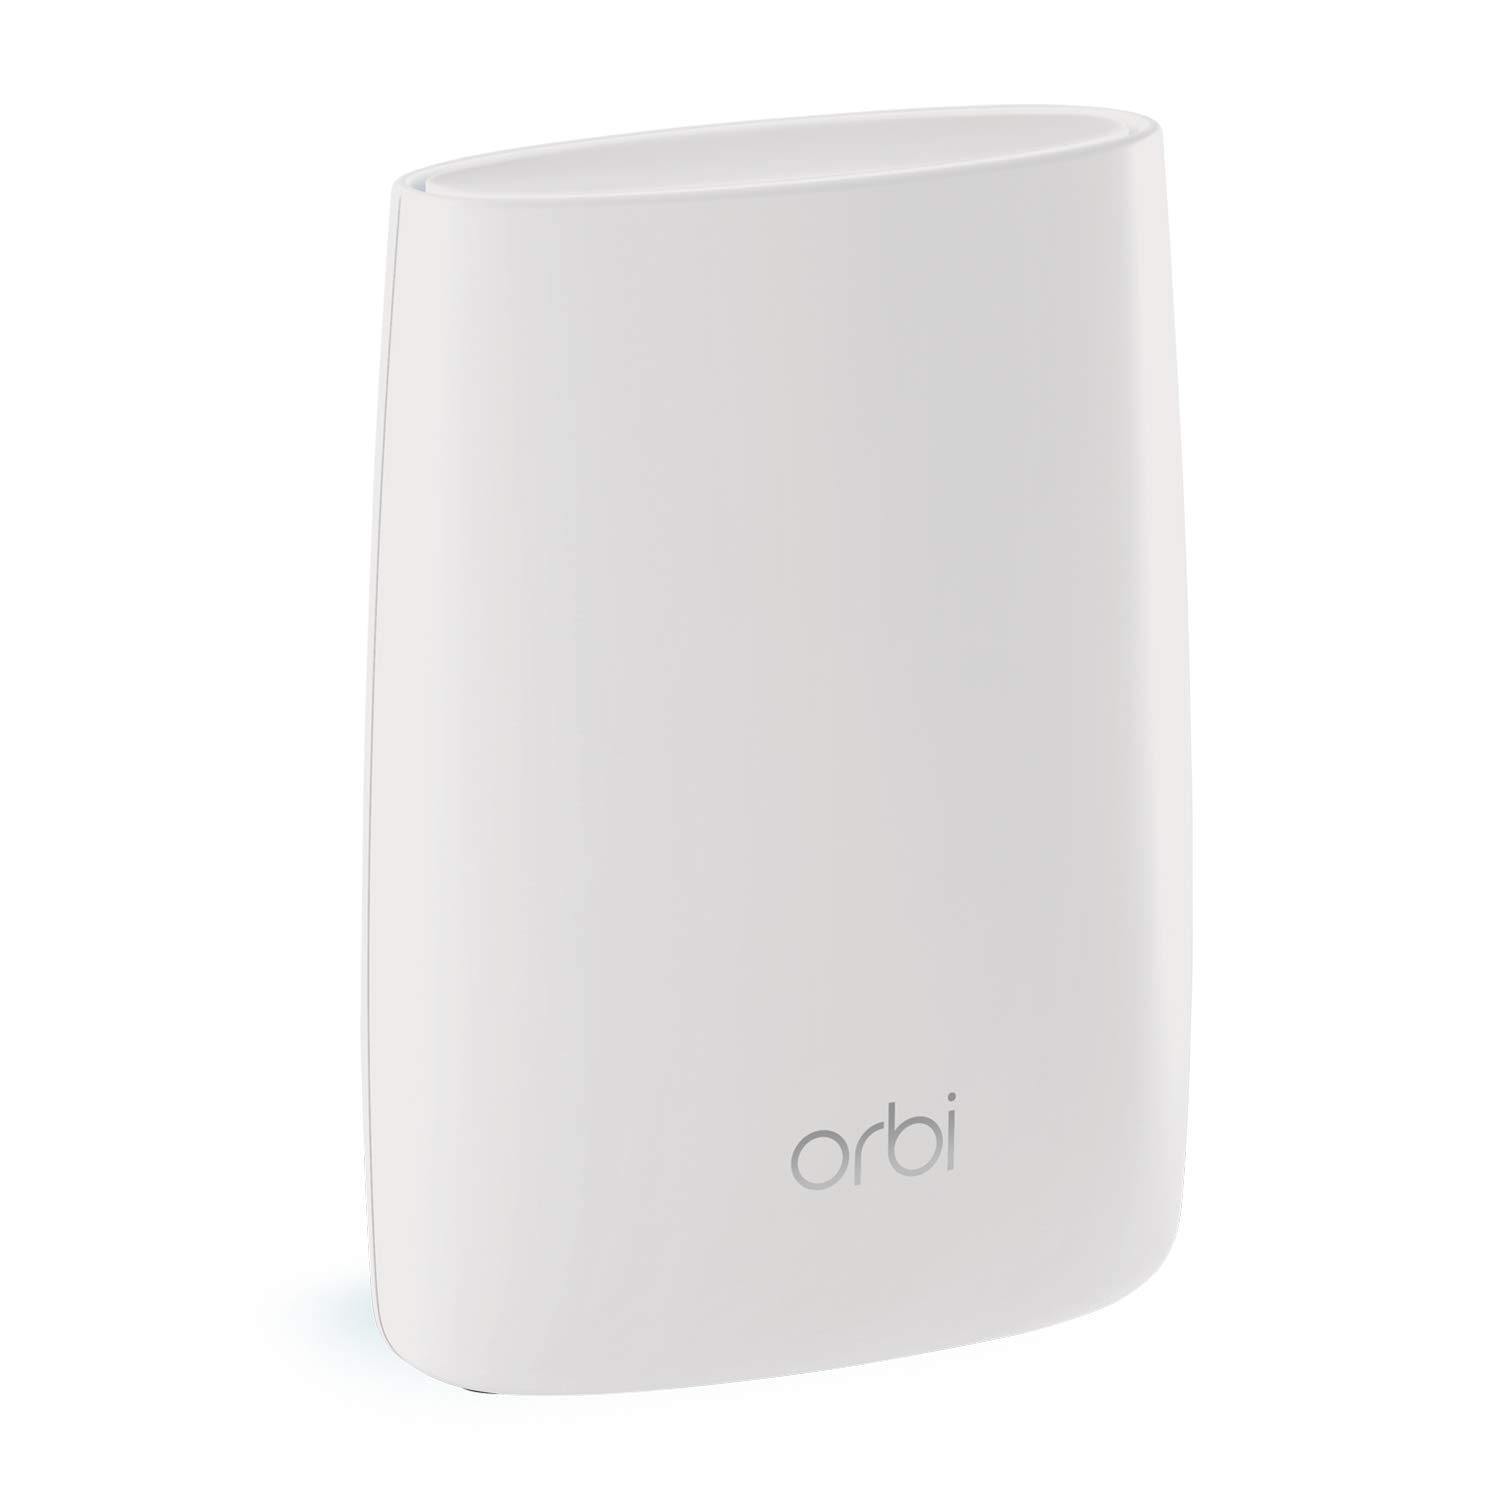 NETGEAR Orbi Ultra-Performance Whole Home Mesh WiFi Satellite Extender - works with your Orbi Router to add 2,500 sq. feet at speeds up to 3 Gbps, AC3000 (RBS50) by NETGEAR